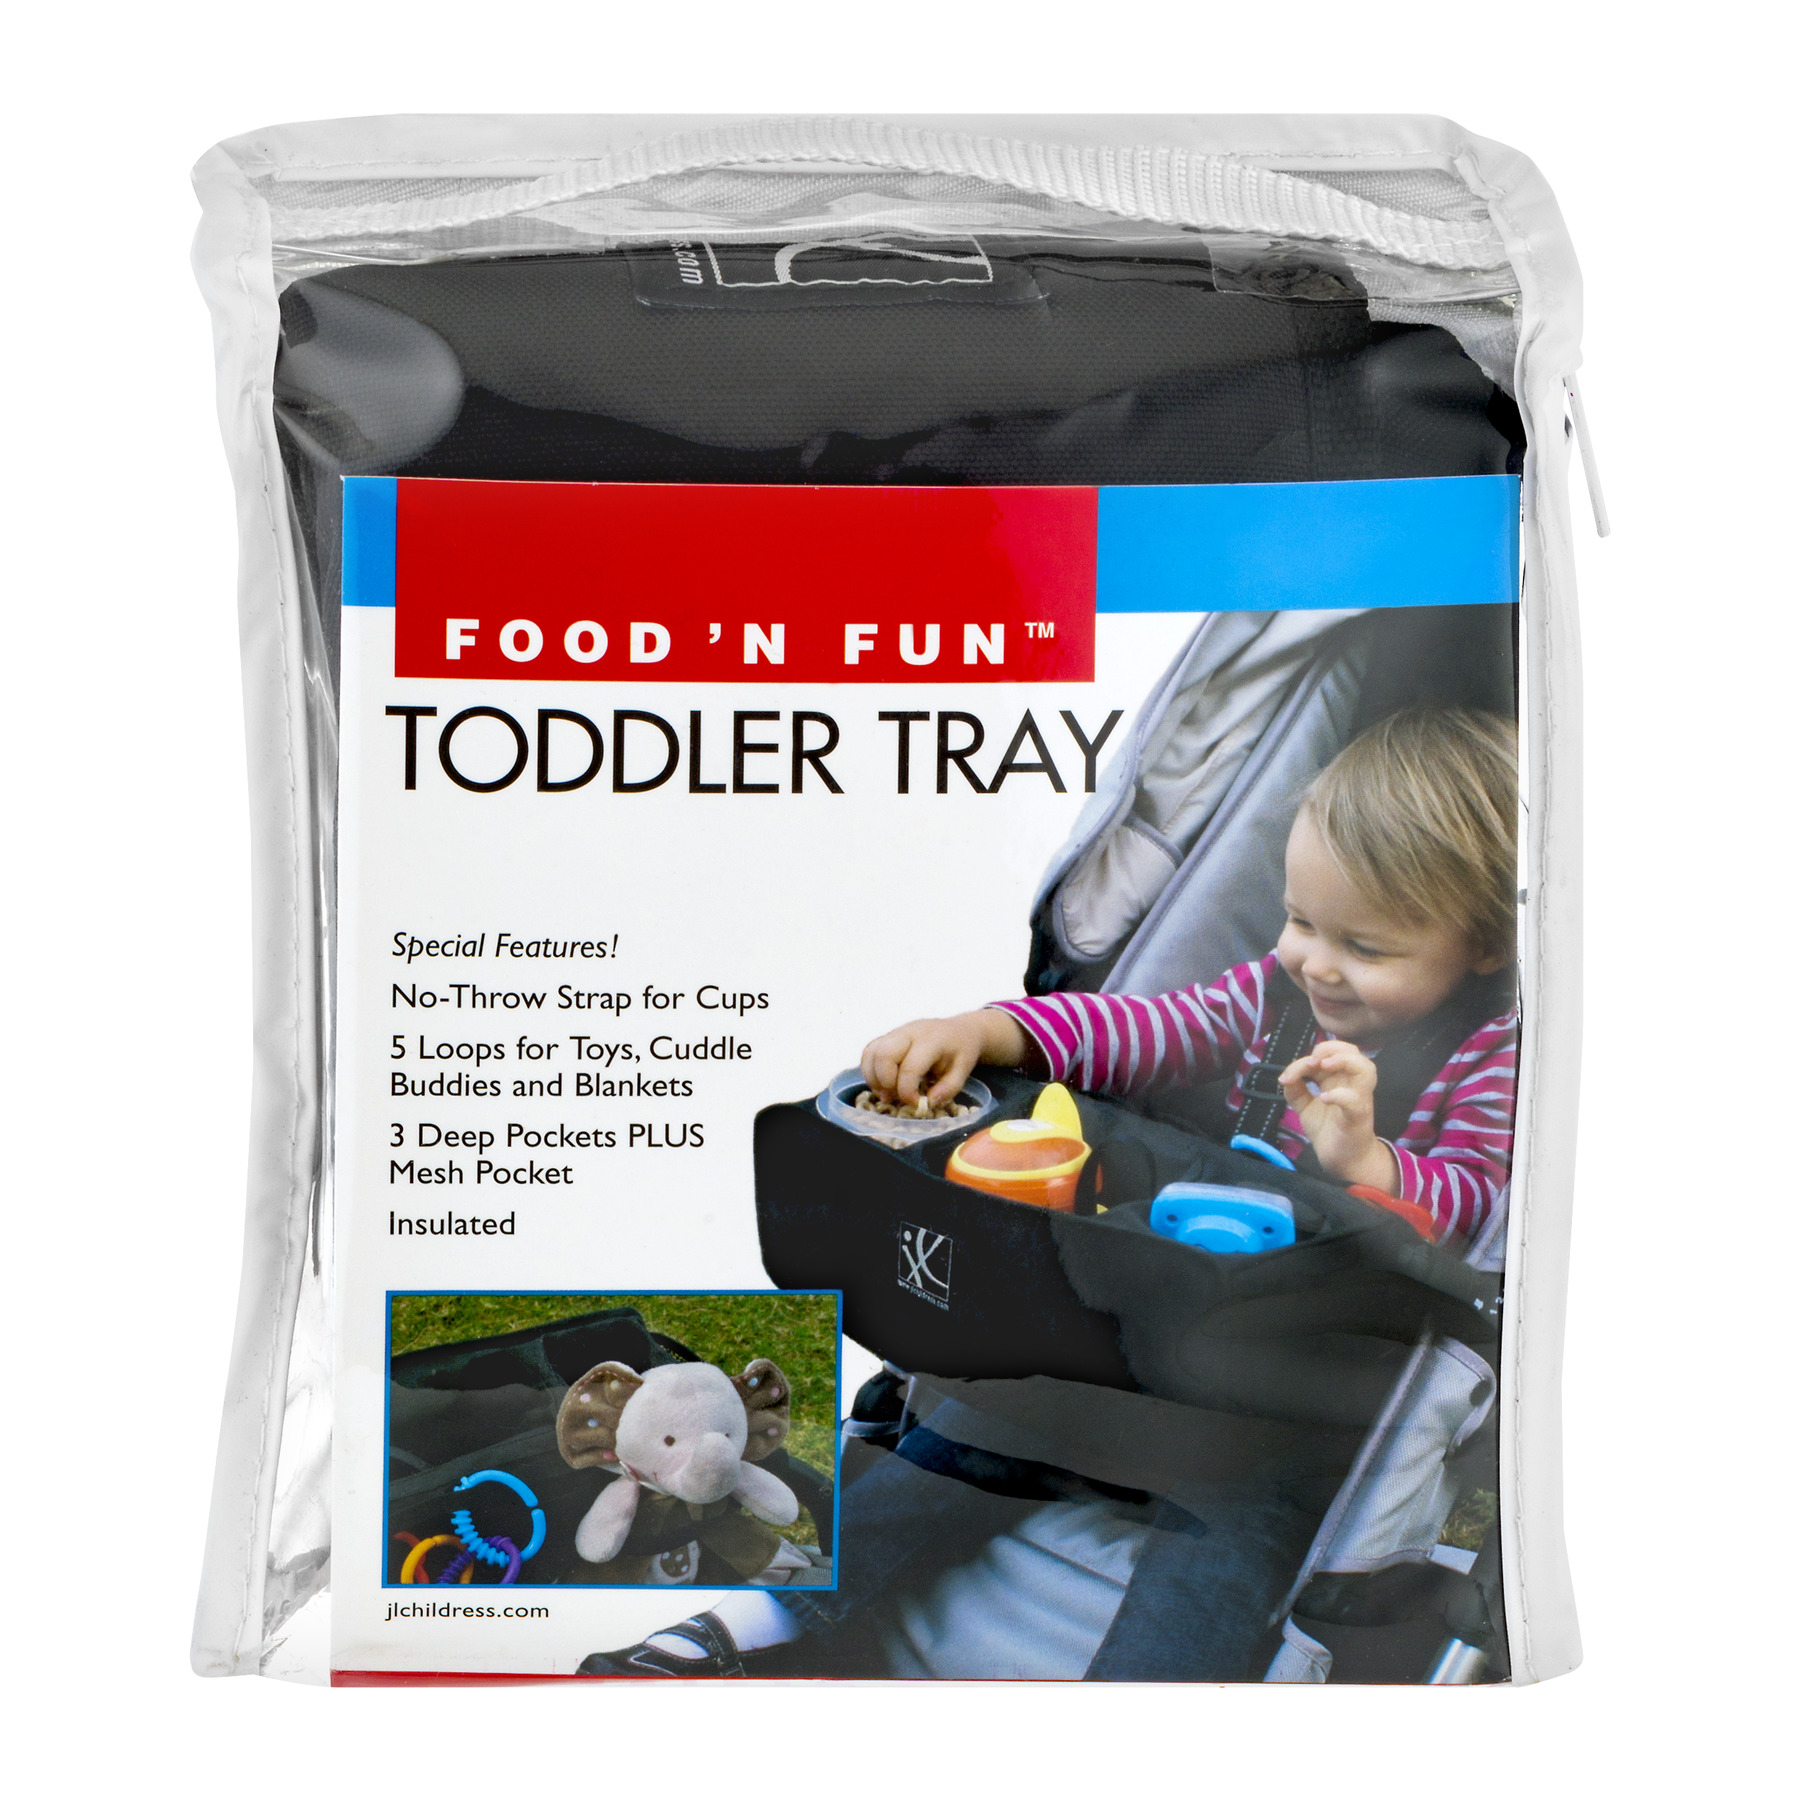 Food 'N Fun Toddler Tray, 1.0 CT